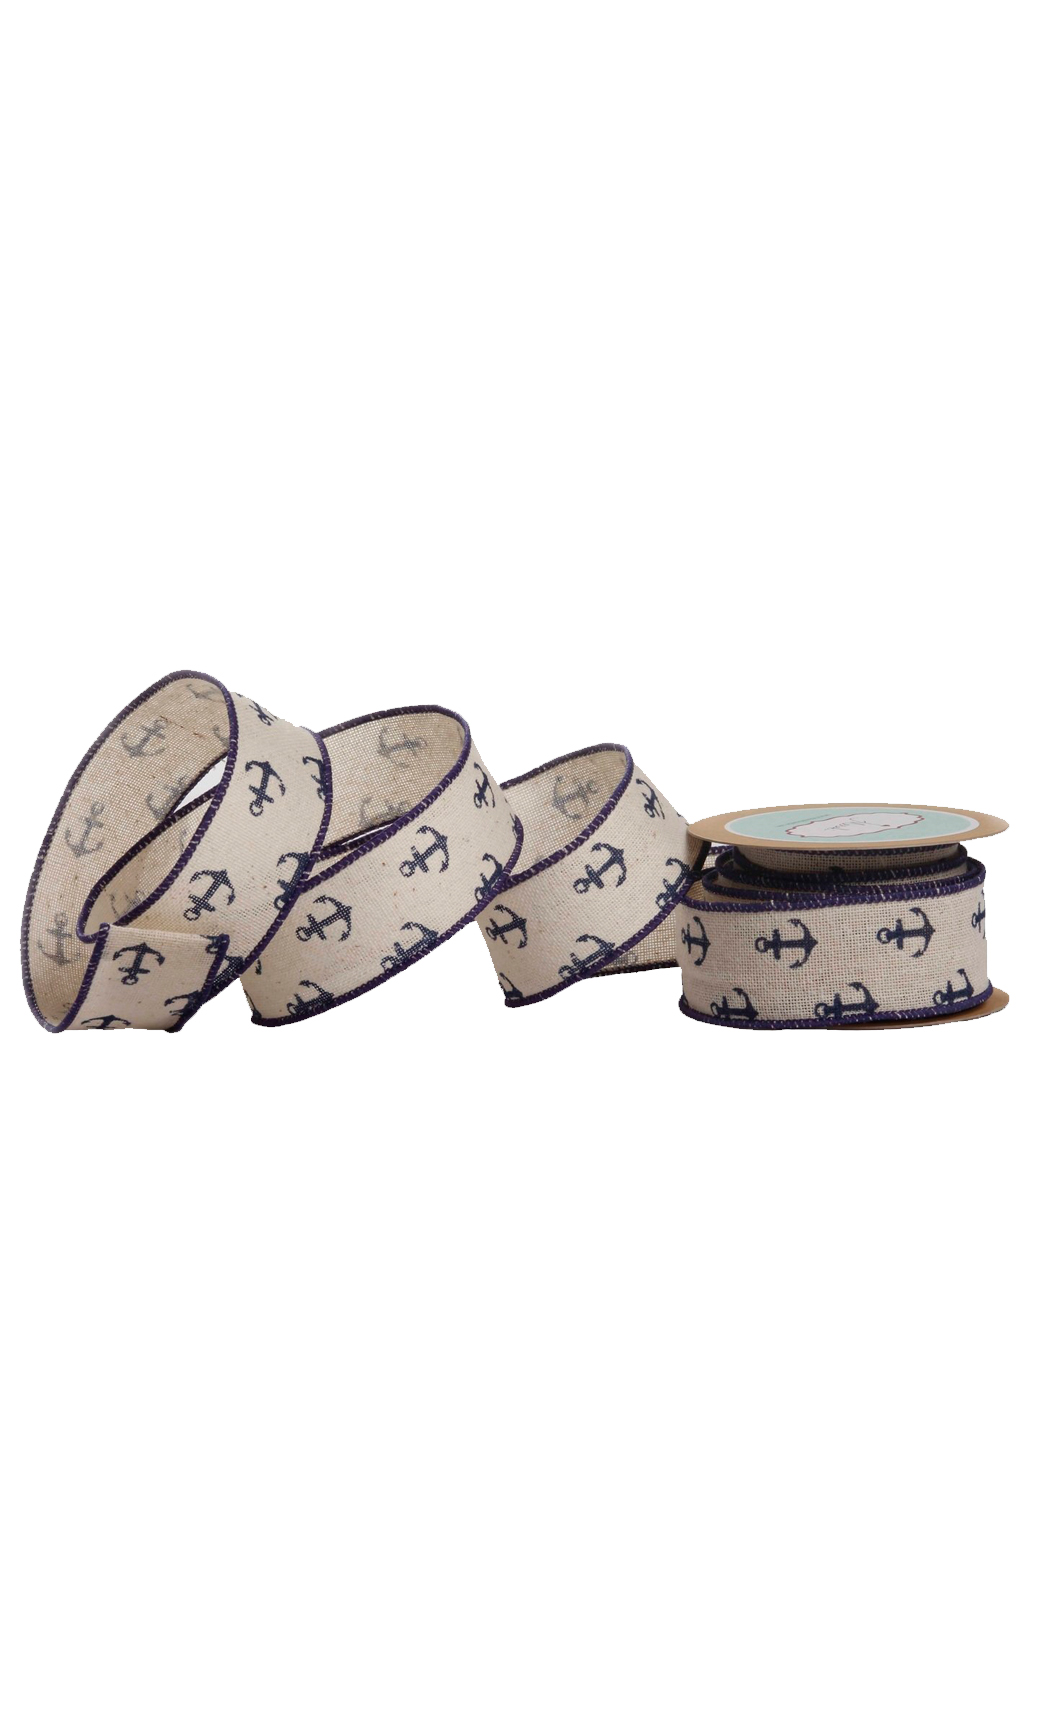 Anchor Printed Ribbon - Buy Online